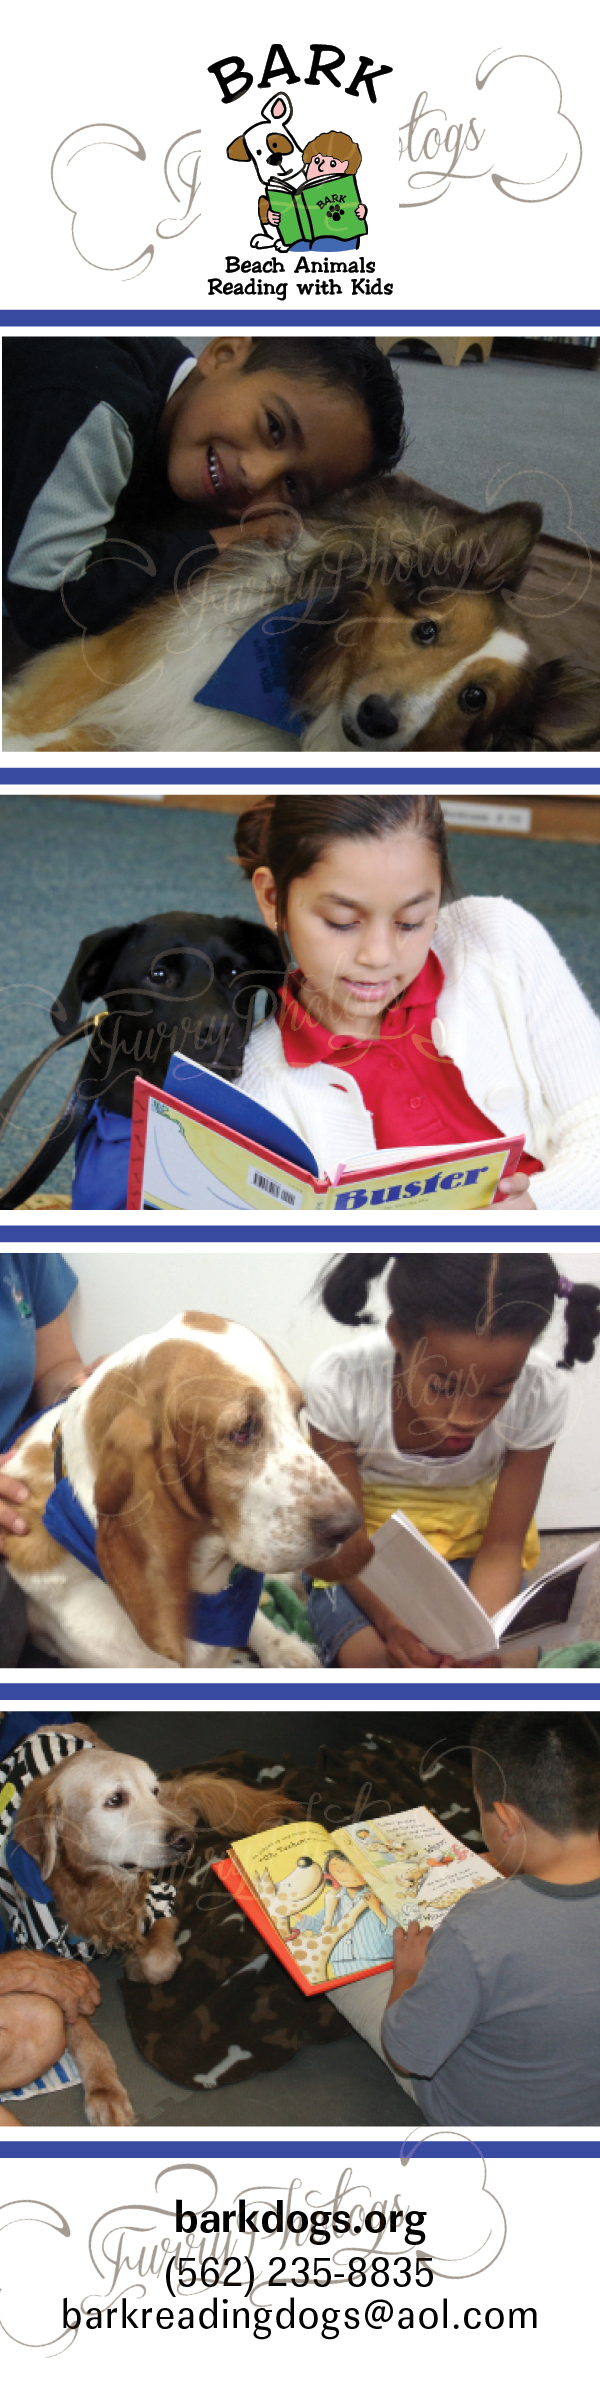 Custom Therapy Dog Bookmarks for Organizations